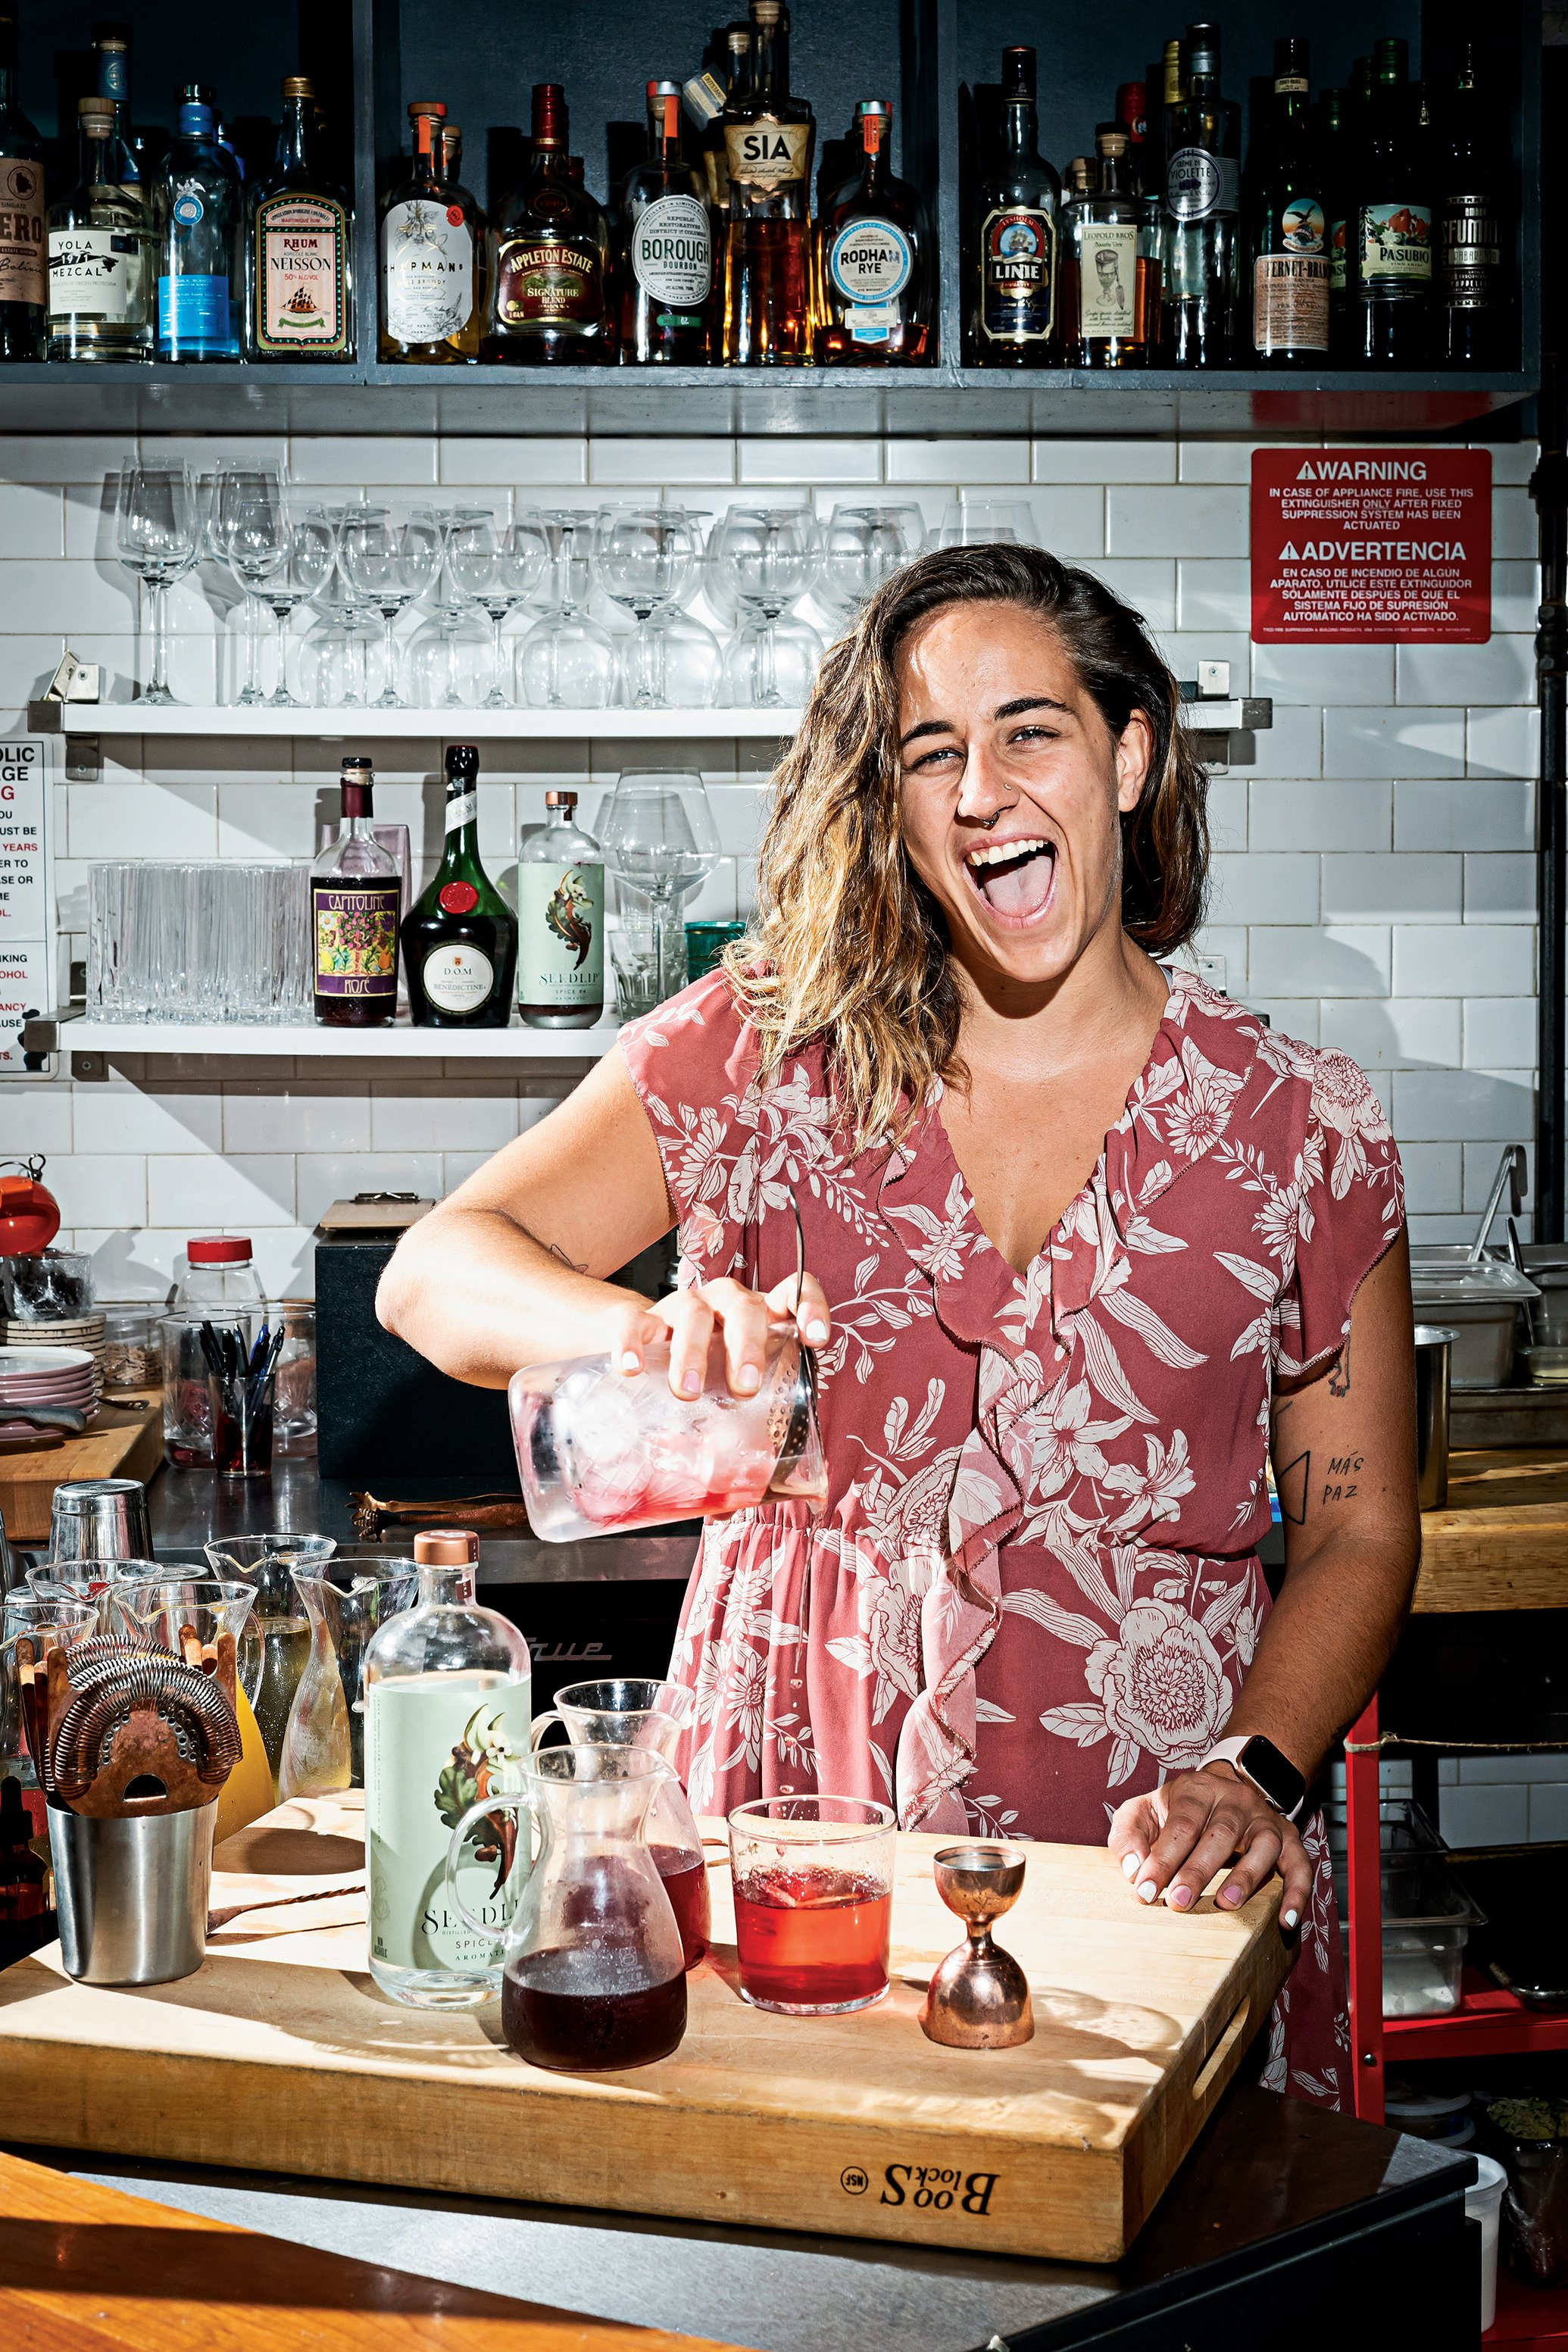 Carlie Steiner mixes up non-alcoholic negronis at Himitsu in Washington, DC. Photographs by Scott Suchman.